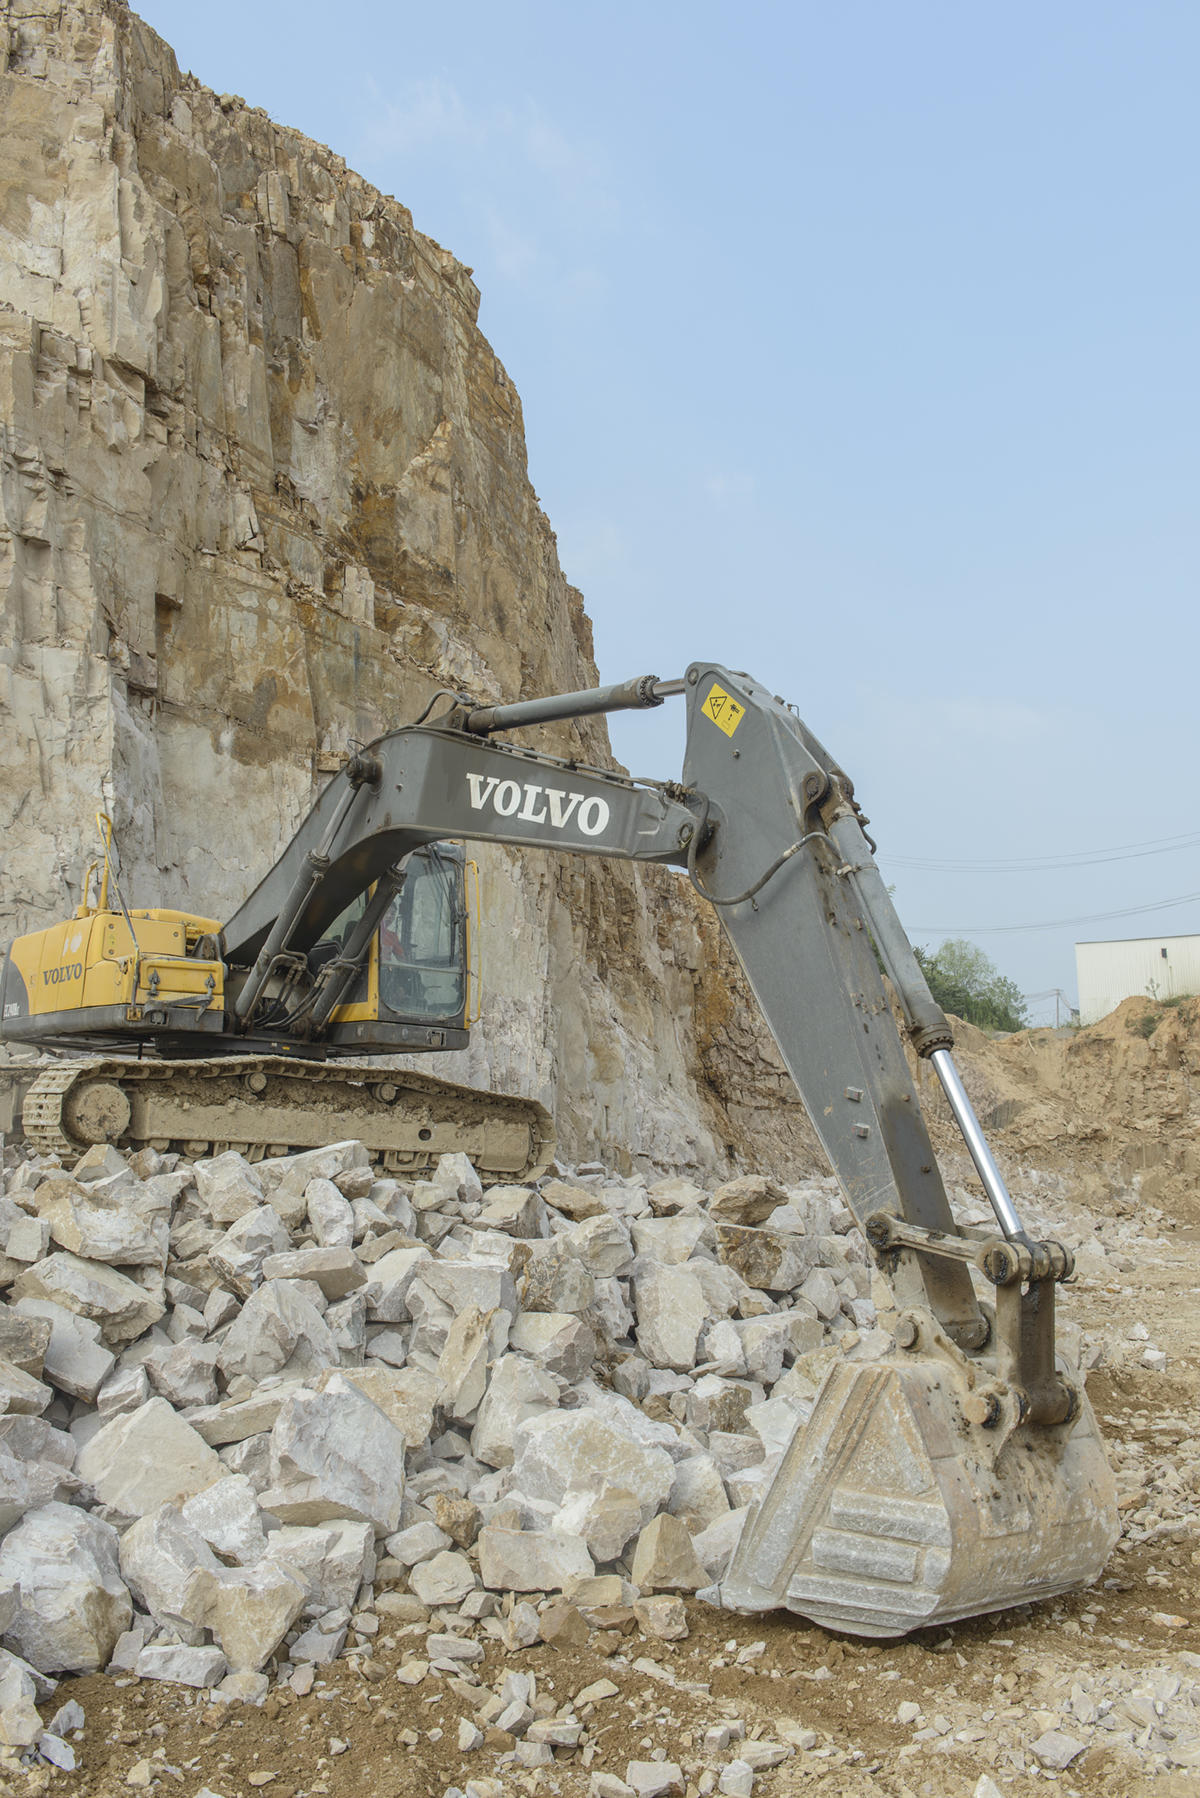 Another Volvo excavator is hard at work on the rocky terrain